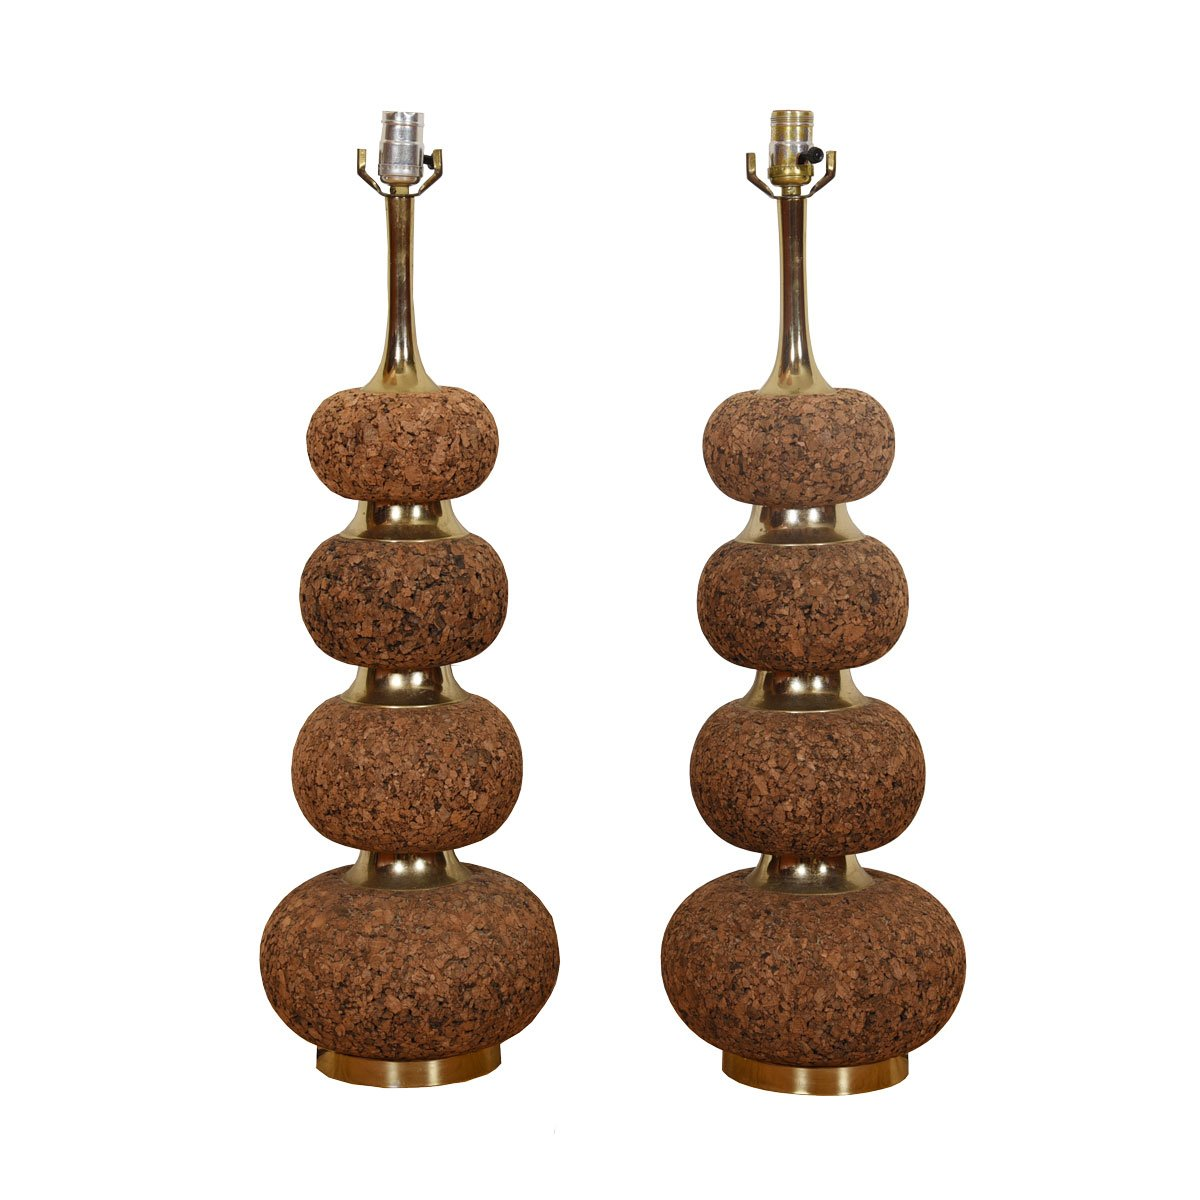 Pair of Cork and Brass Lamps with Graduated Design